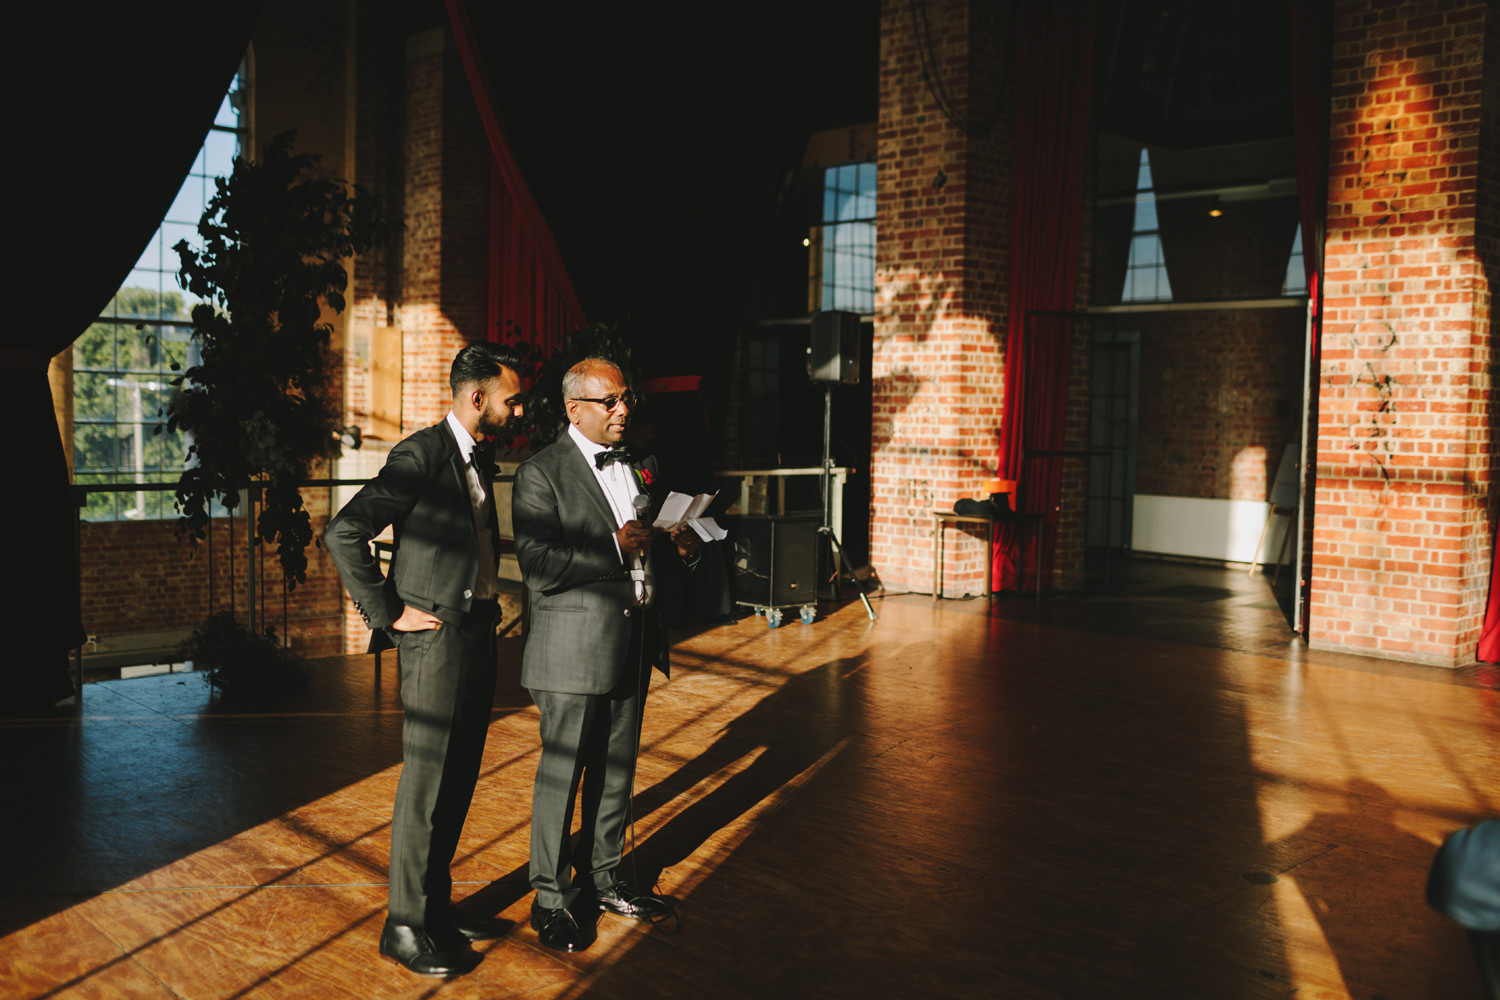 Warehouse_Wedding_Melbourne_Navin_Elly086.JPG